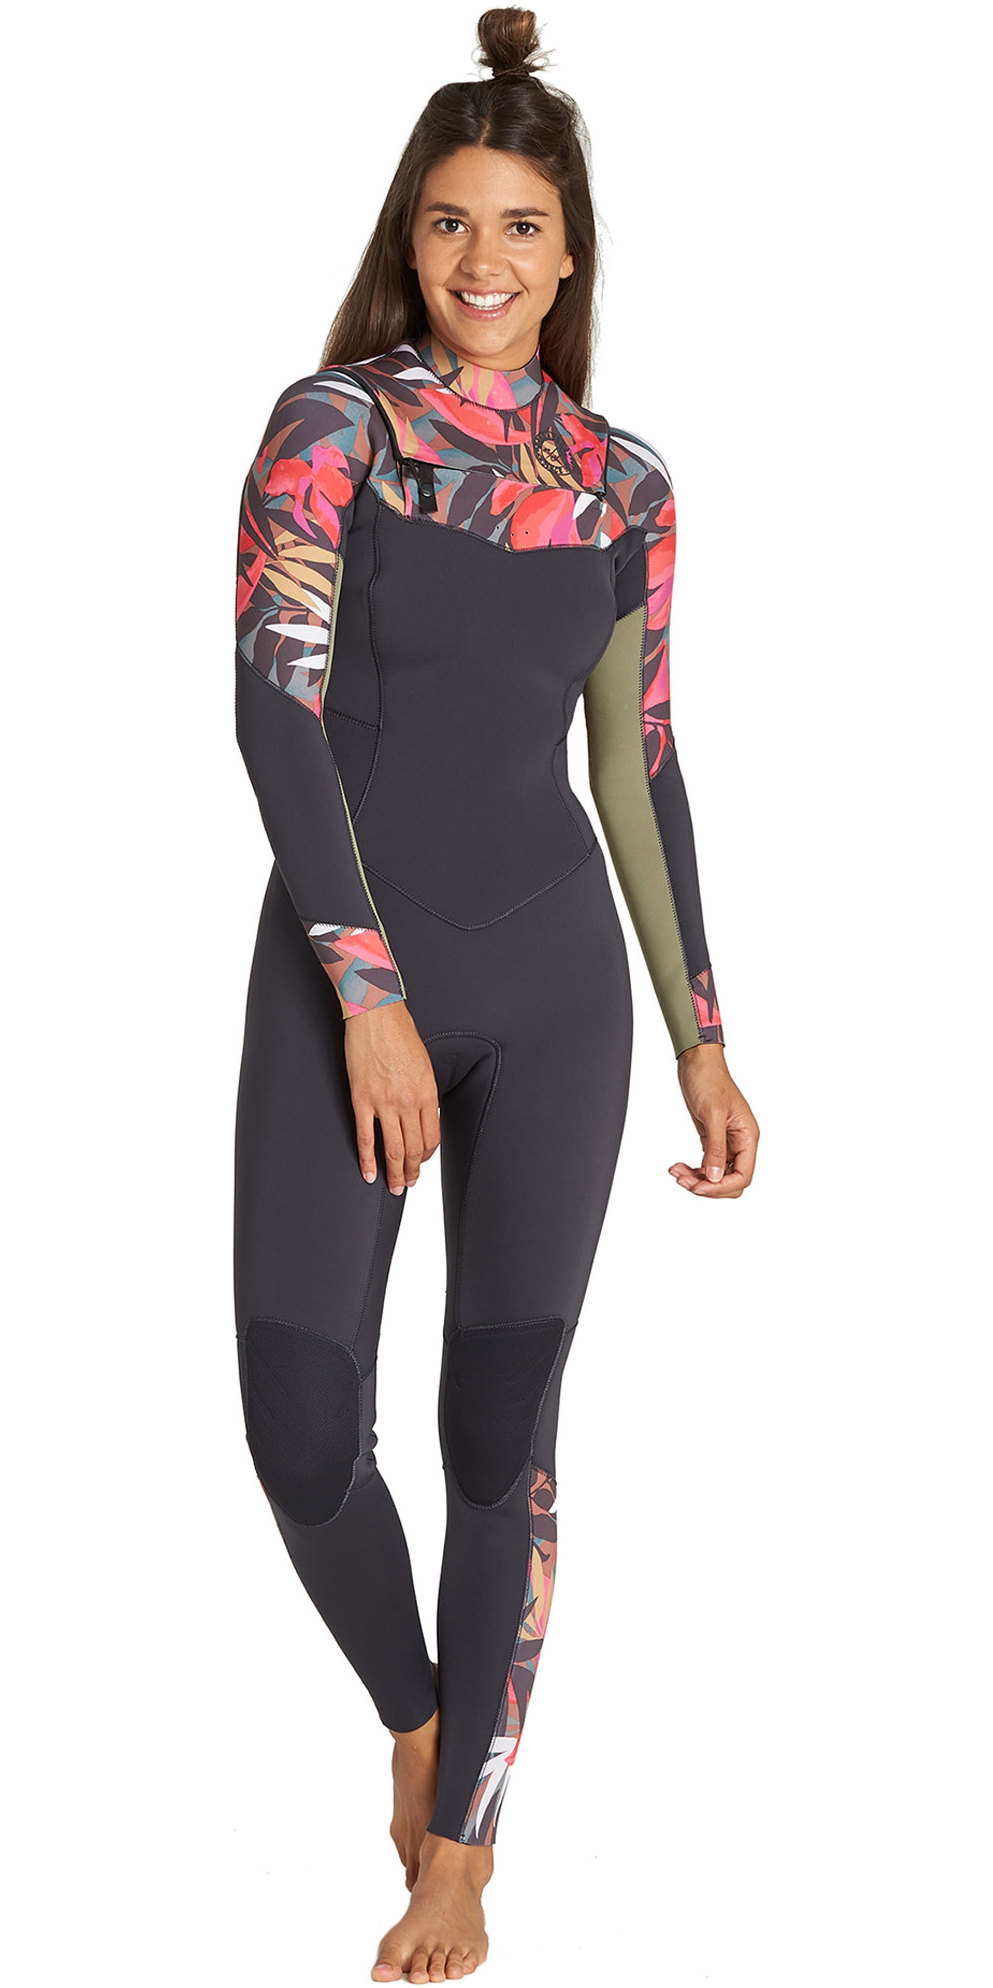 2019 Billabong Vrouwen Salty Dayz 5/4mm Chest Zip Wetsuit Tropische Q45g30